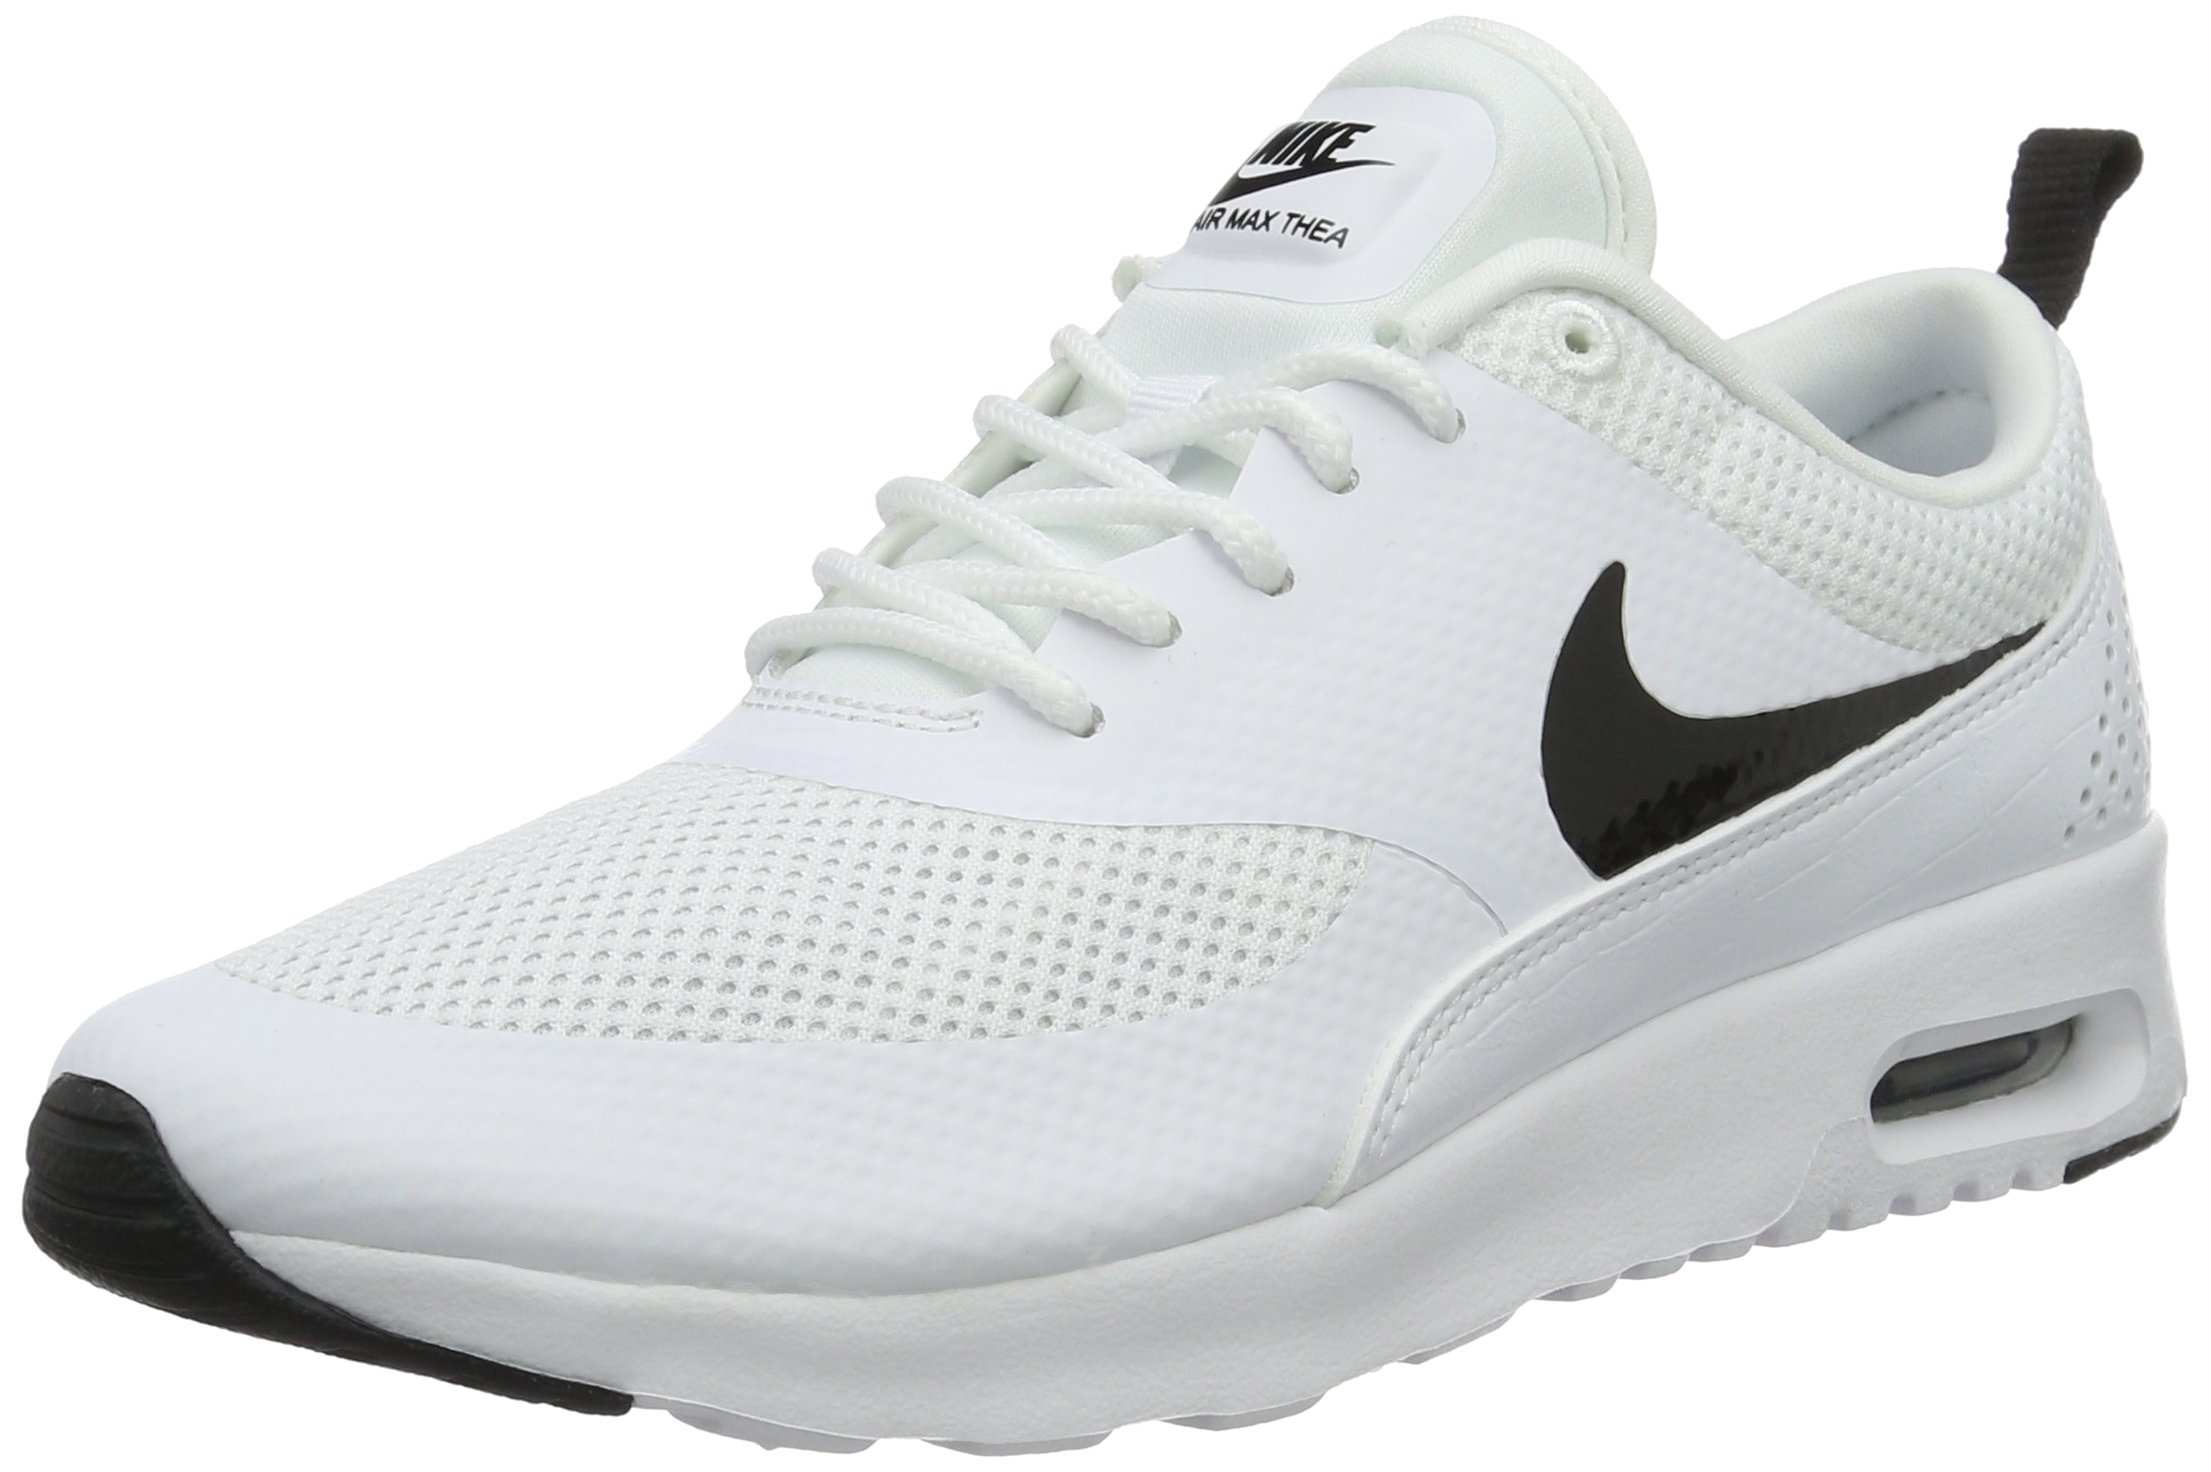 b51644ccc0b75 Galleon - Nike Womens Air Max Thea Running Shoes White/Black 599409-103 Size  9.5